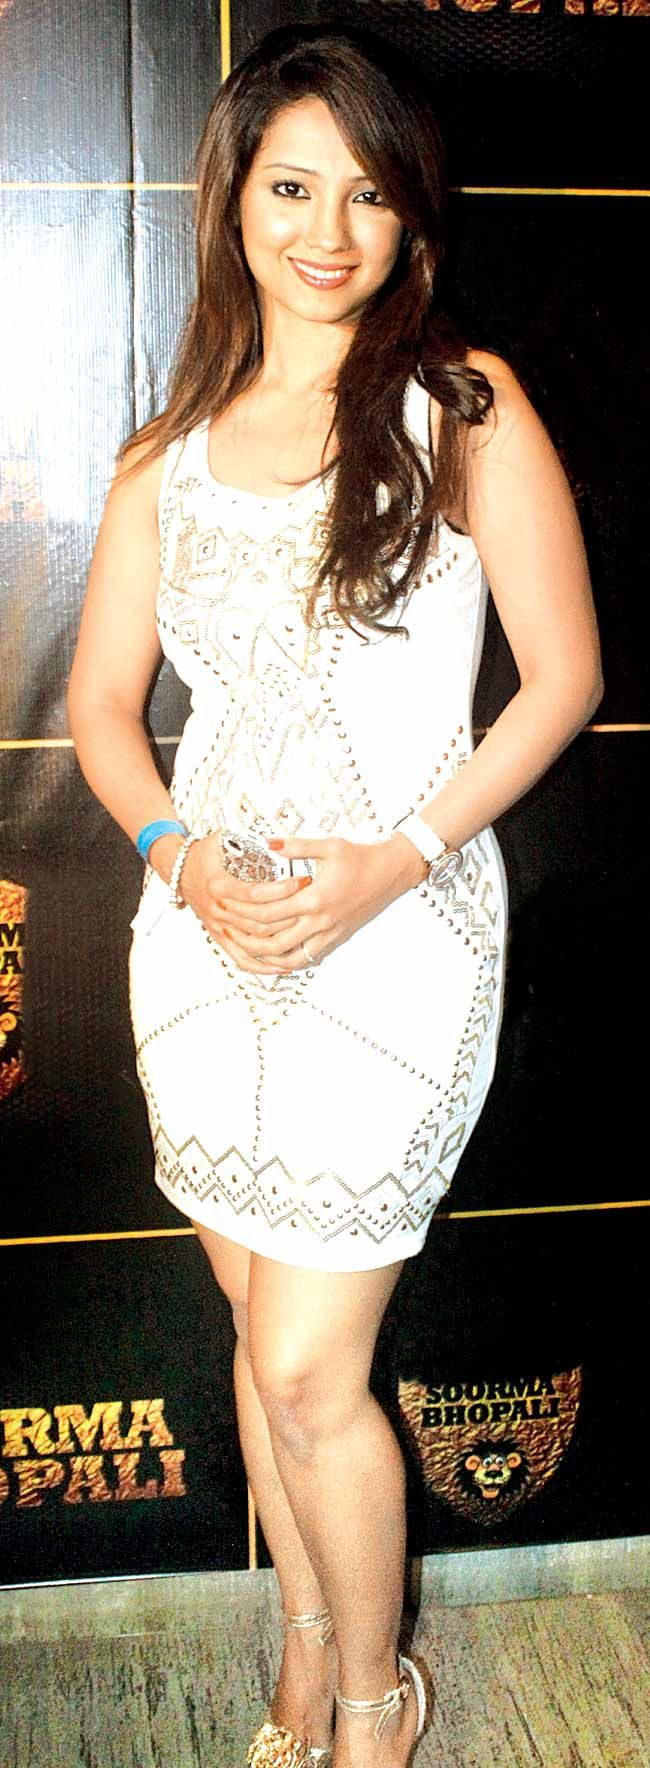 Ada Khan at the official launch of the BCL team Soorma Bhopali's team jersey. #Style #Fashion #Beauty #Bollywood #BCL